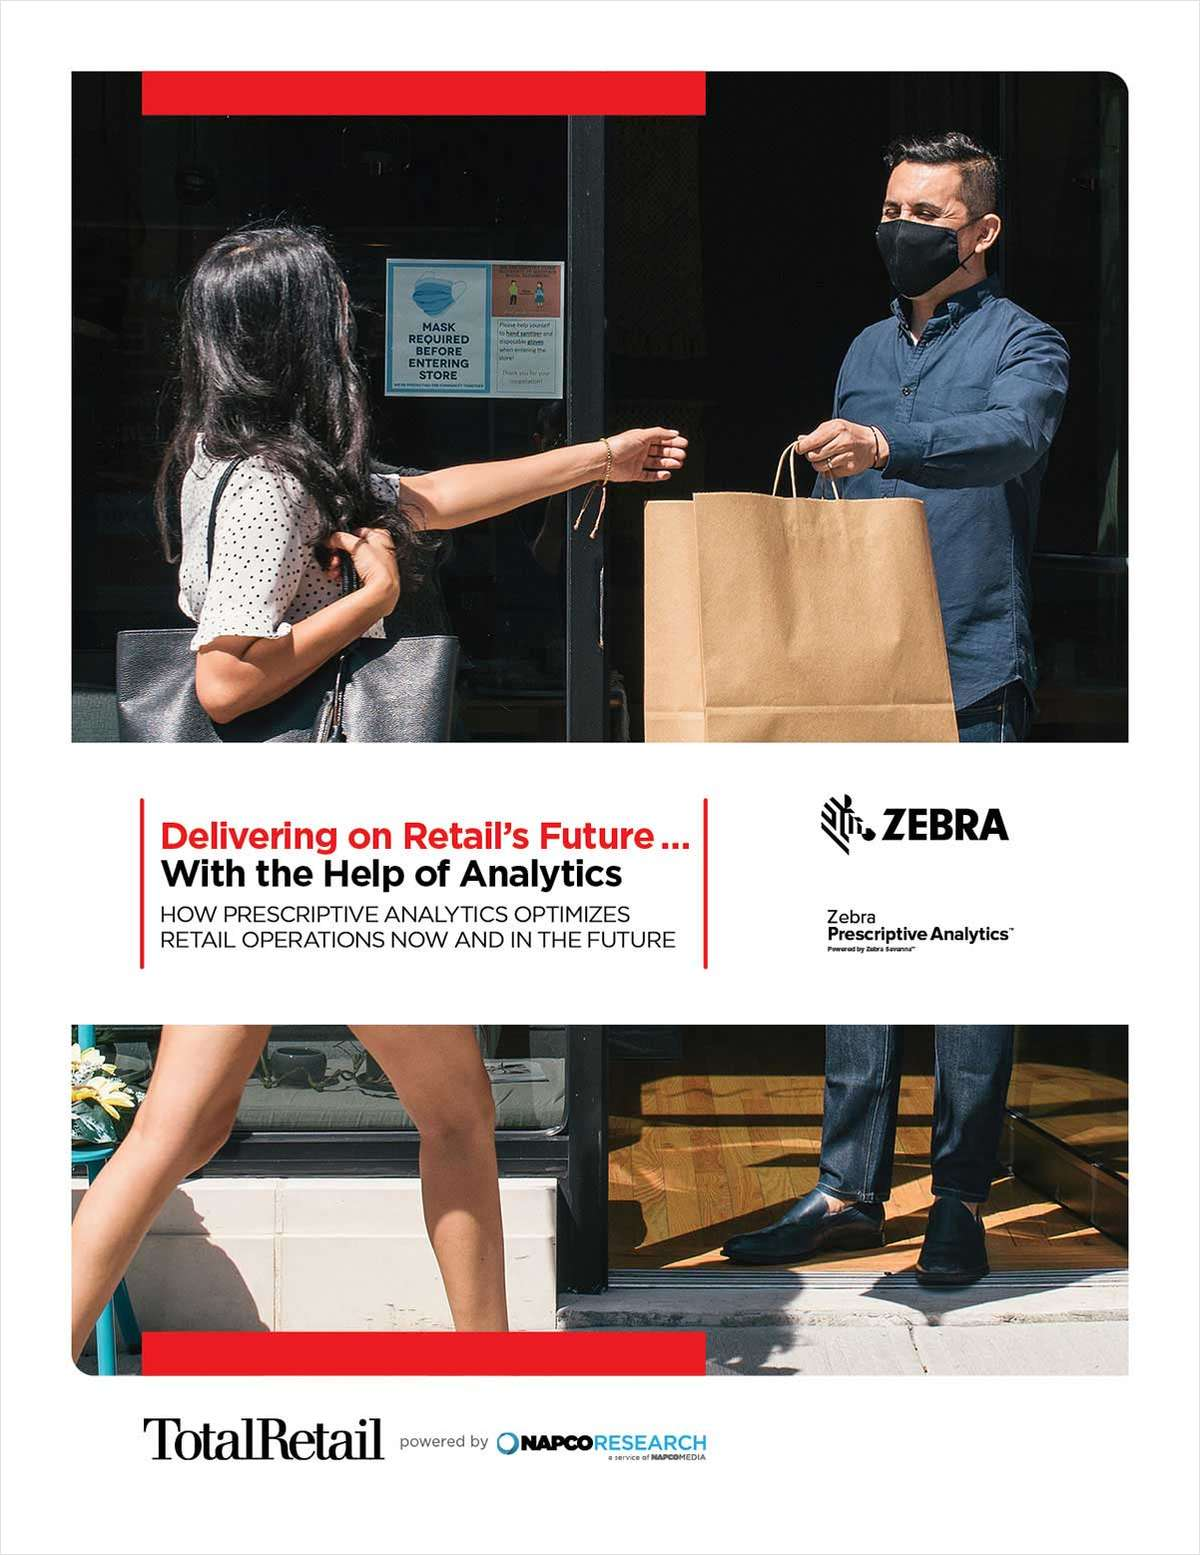 Delivering on Retail's Future...With the Help of Analytics